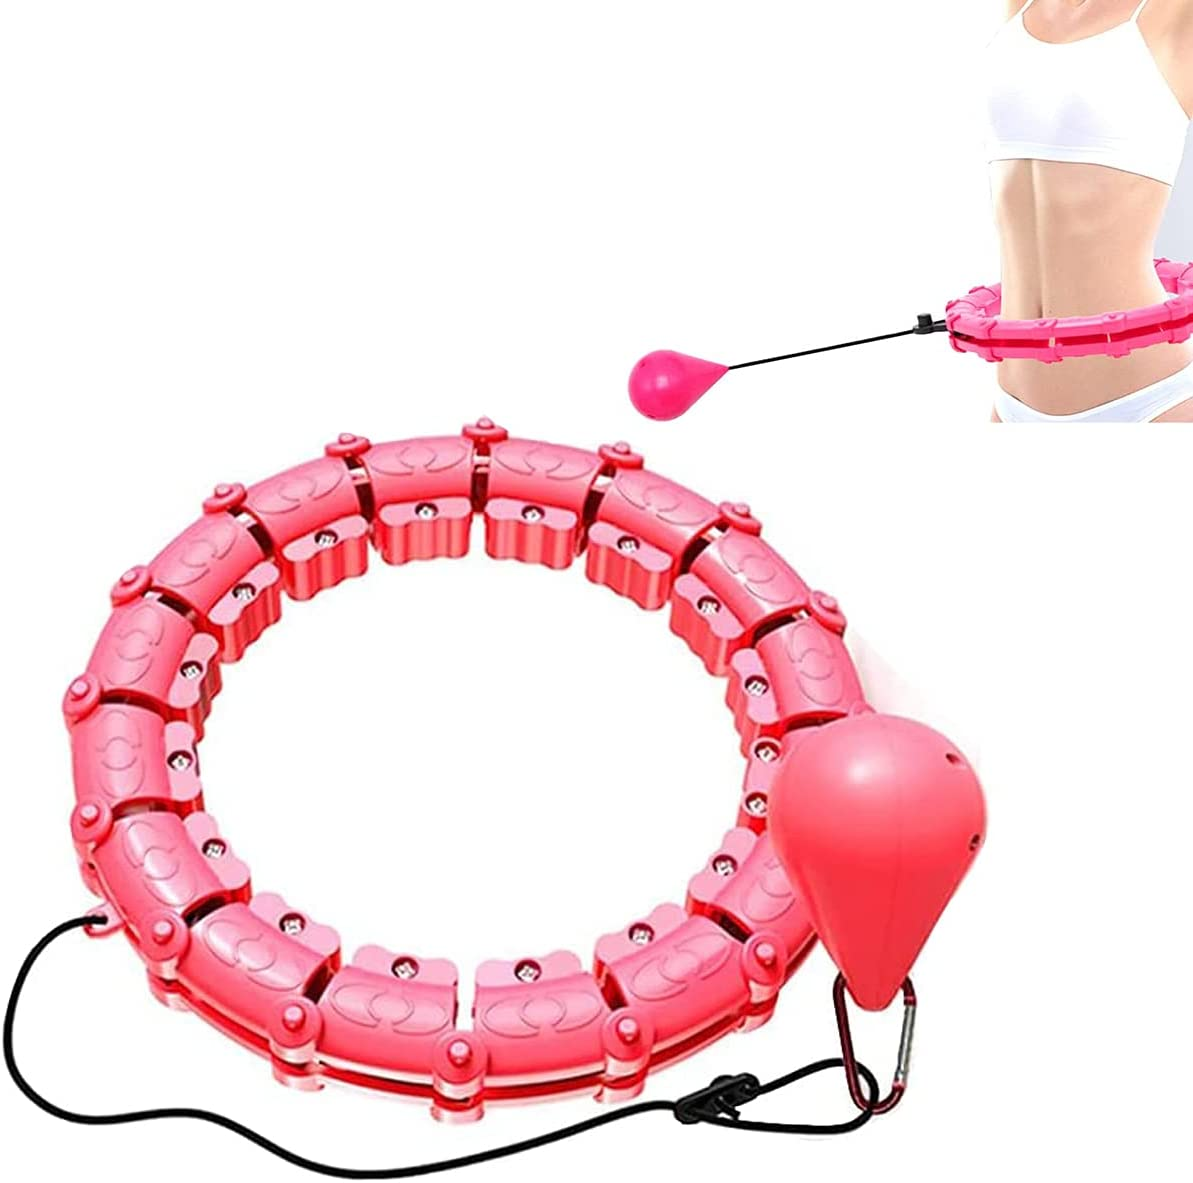 Sarny Hula Hoop Smart Weighted Spring new work Hoola Directly managed store Ba Auto-Spinning with